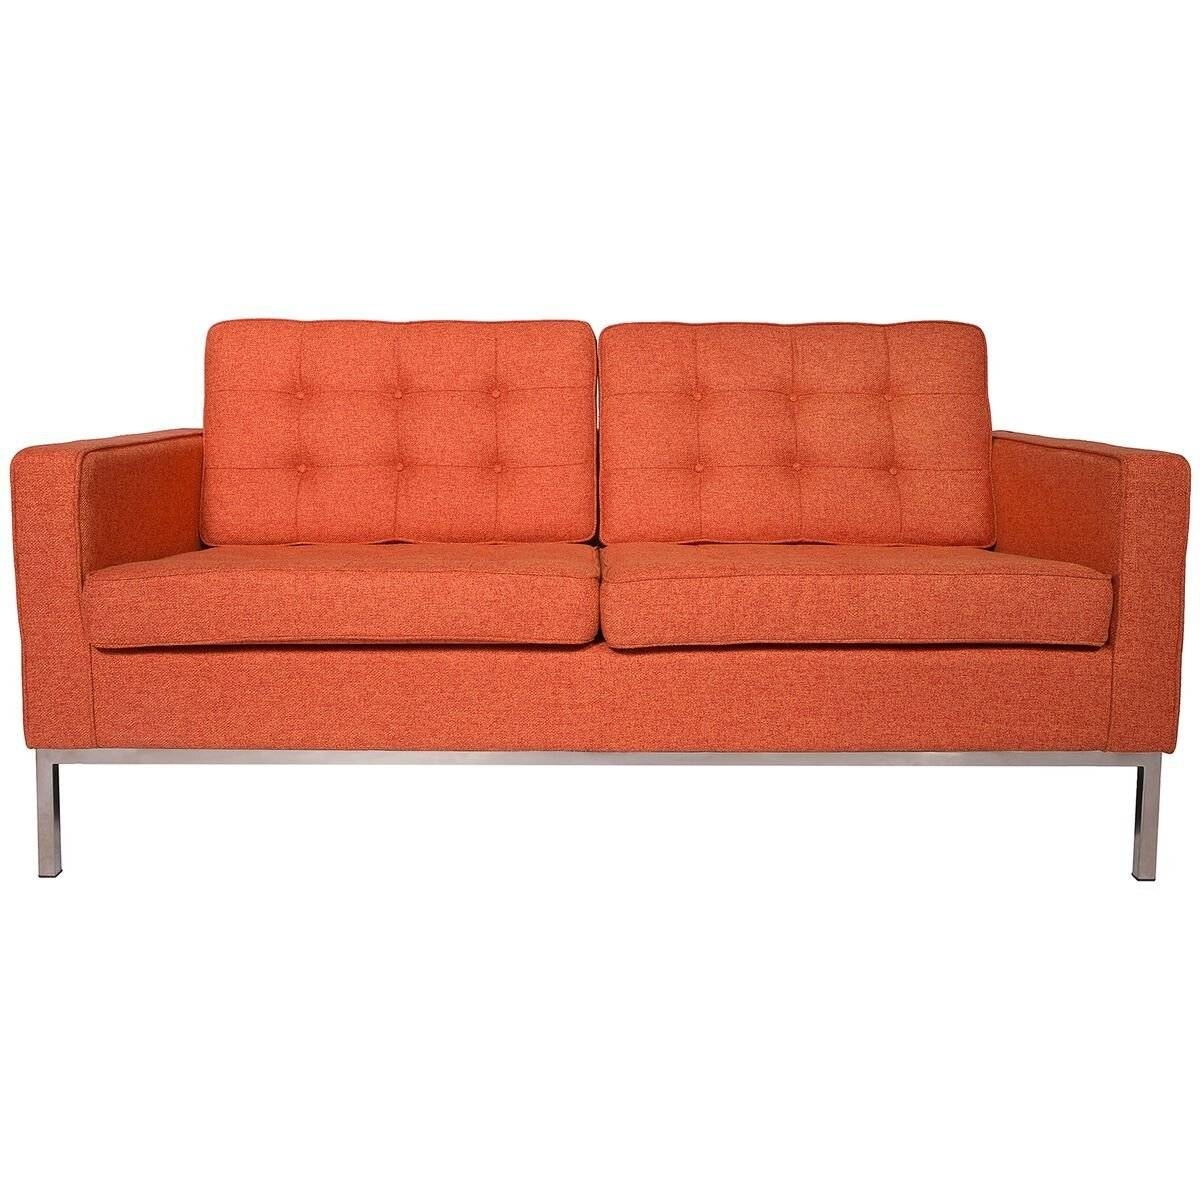 Leather Sofa Uk. Palermo Corner Sofa. . Modern Leather Sofa 201 Cm throughout Florence Leather Sofas (Image 24 of 30)